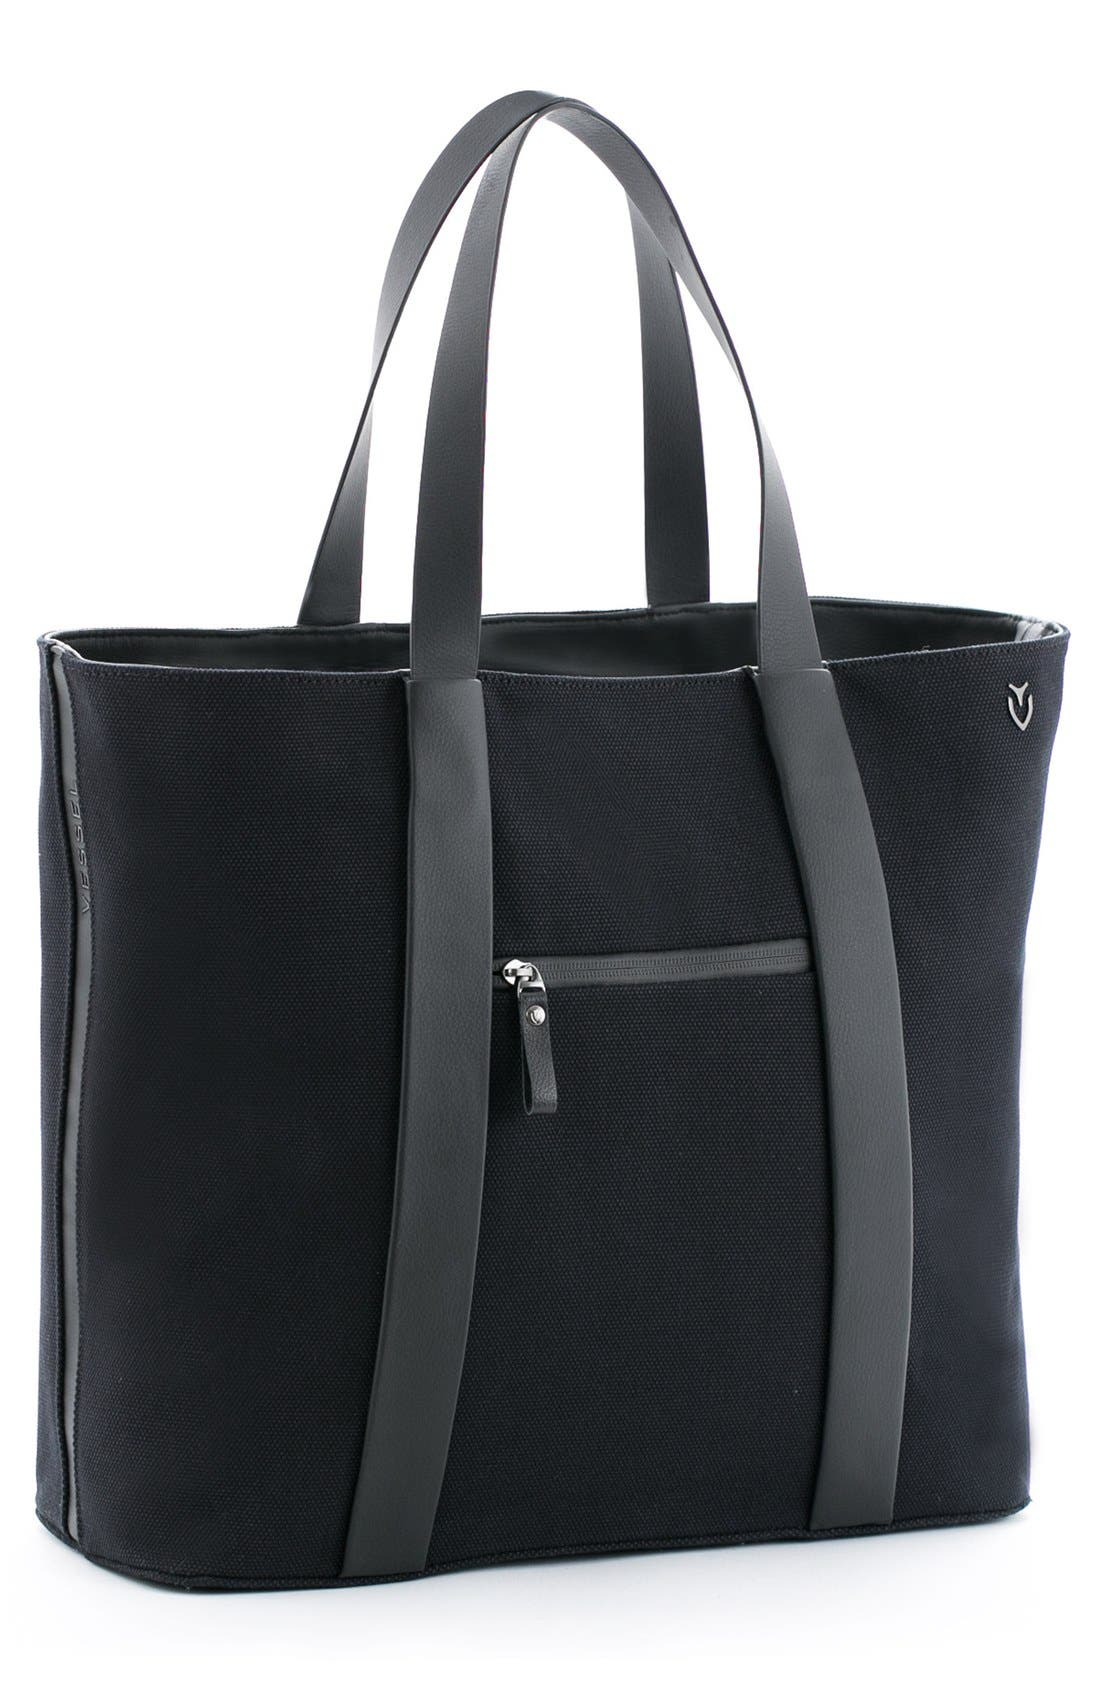 picture Vessel Signature Tote Bag Giveaway